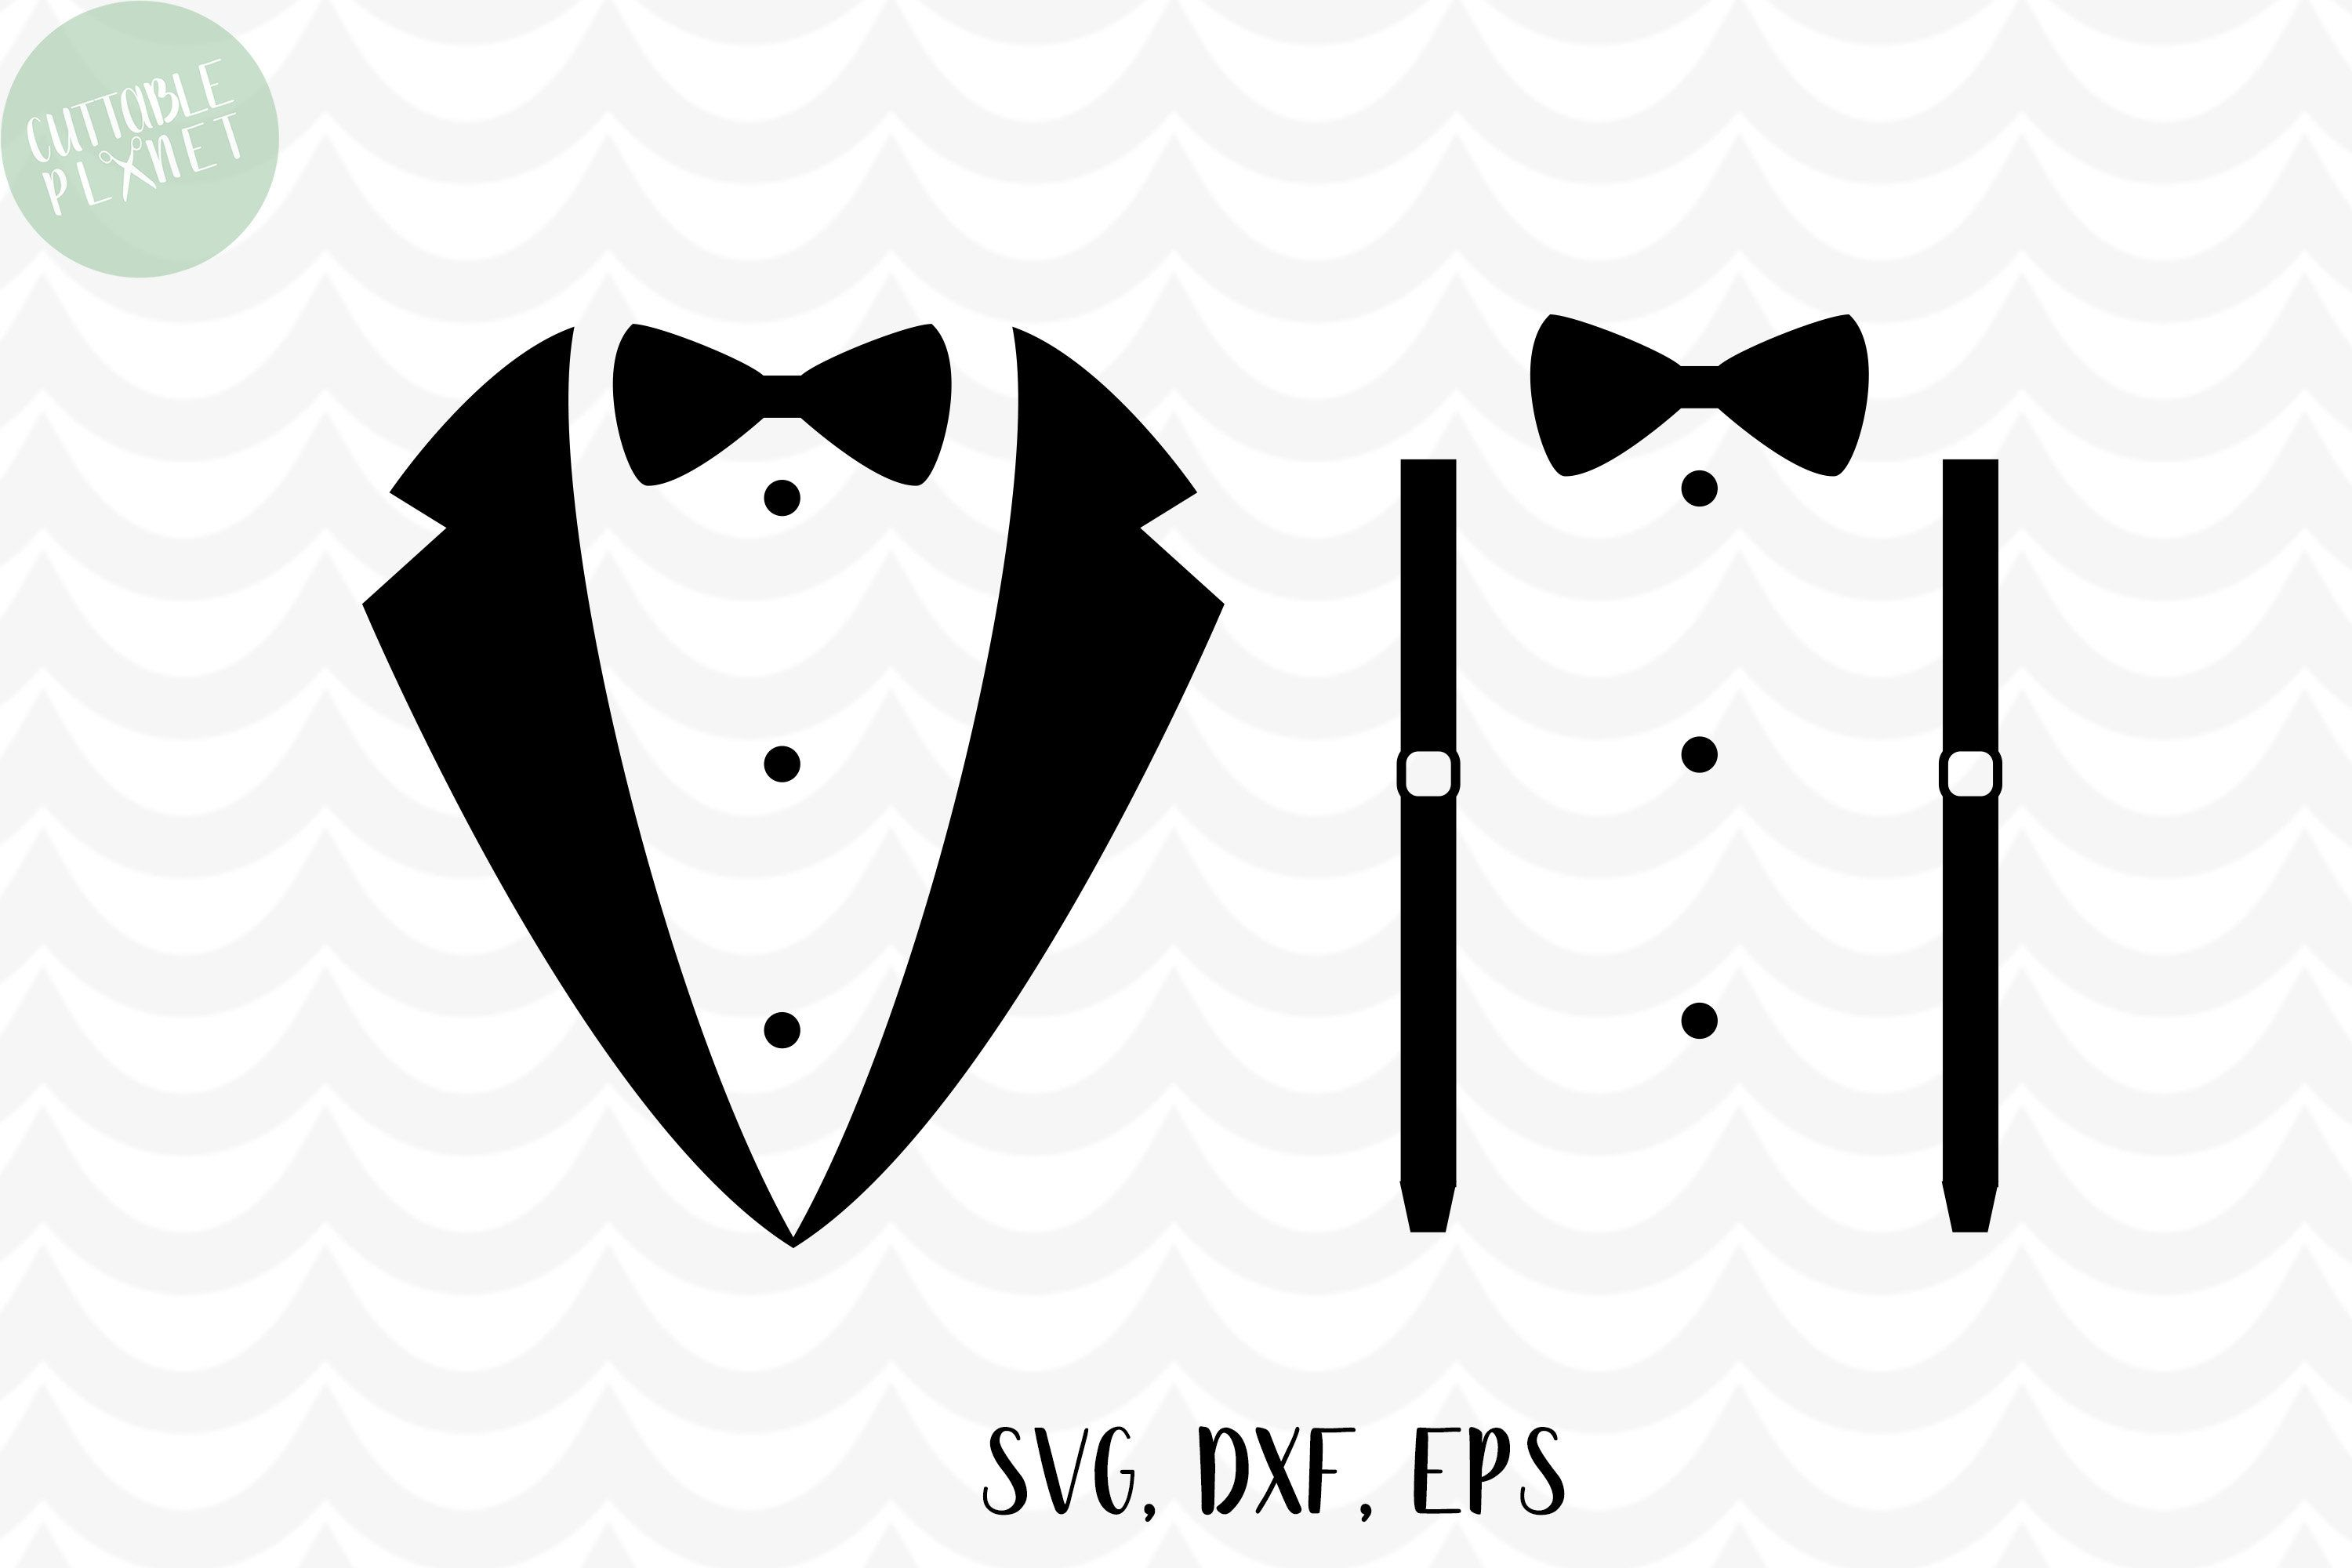 Tuxedo Svg Dxf Eps Suspenders Svg Dxf Eps Wedding Svg Etsy In 2020 Wedding Drawing Tie Drawing Bows